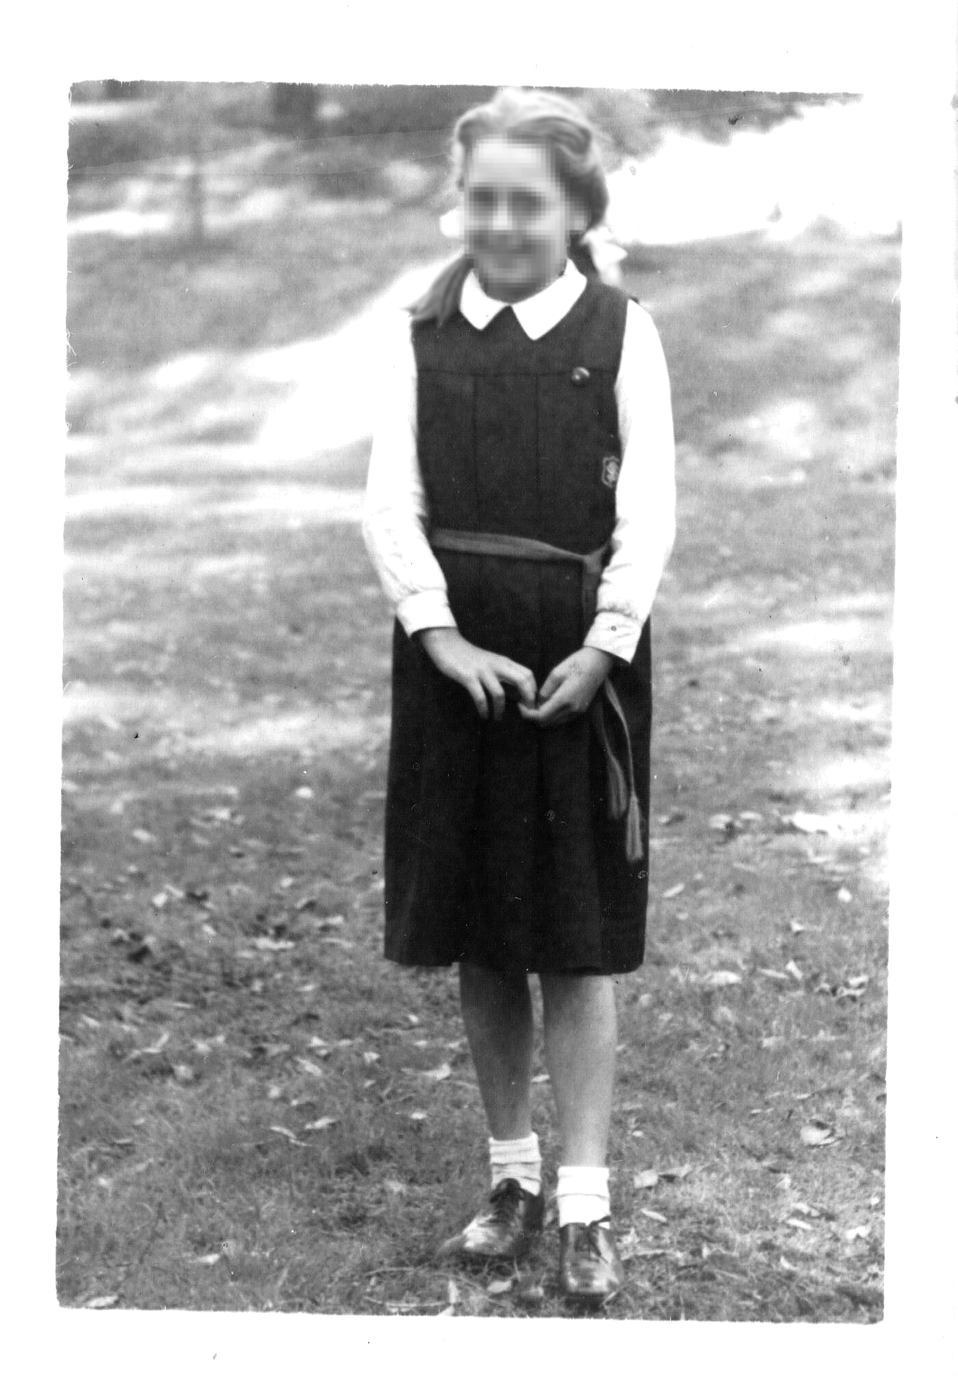 My mother granted me permission to use a photo of her in her school uniform on the pages about both school uniform, schools and 1950. She dose not mind it being used elsewhere by others on the Wiki if they wish to. She released the copy right rights to. I